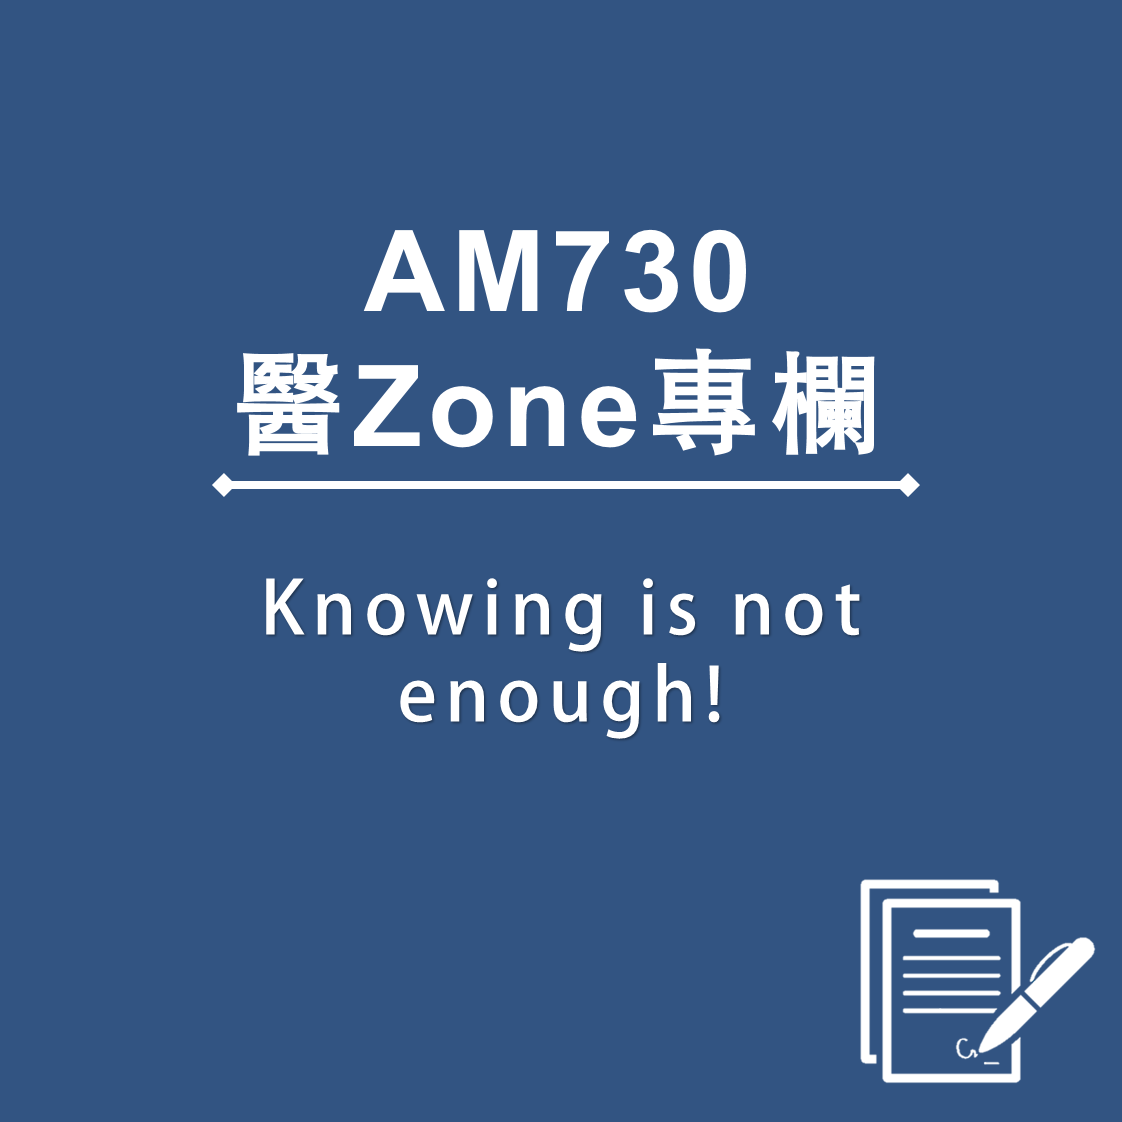 AM730 醫Zone 專欄 - Knowing is not enough!